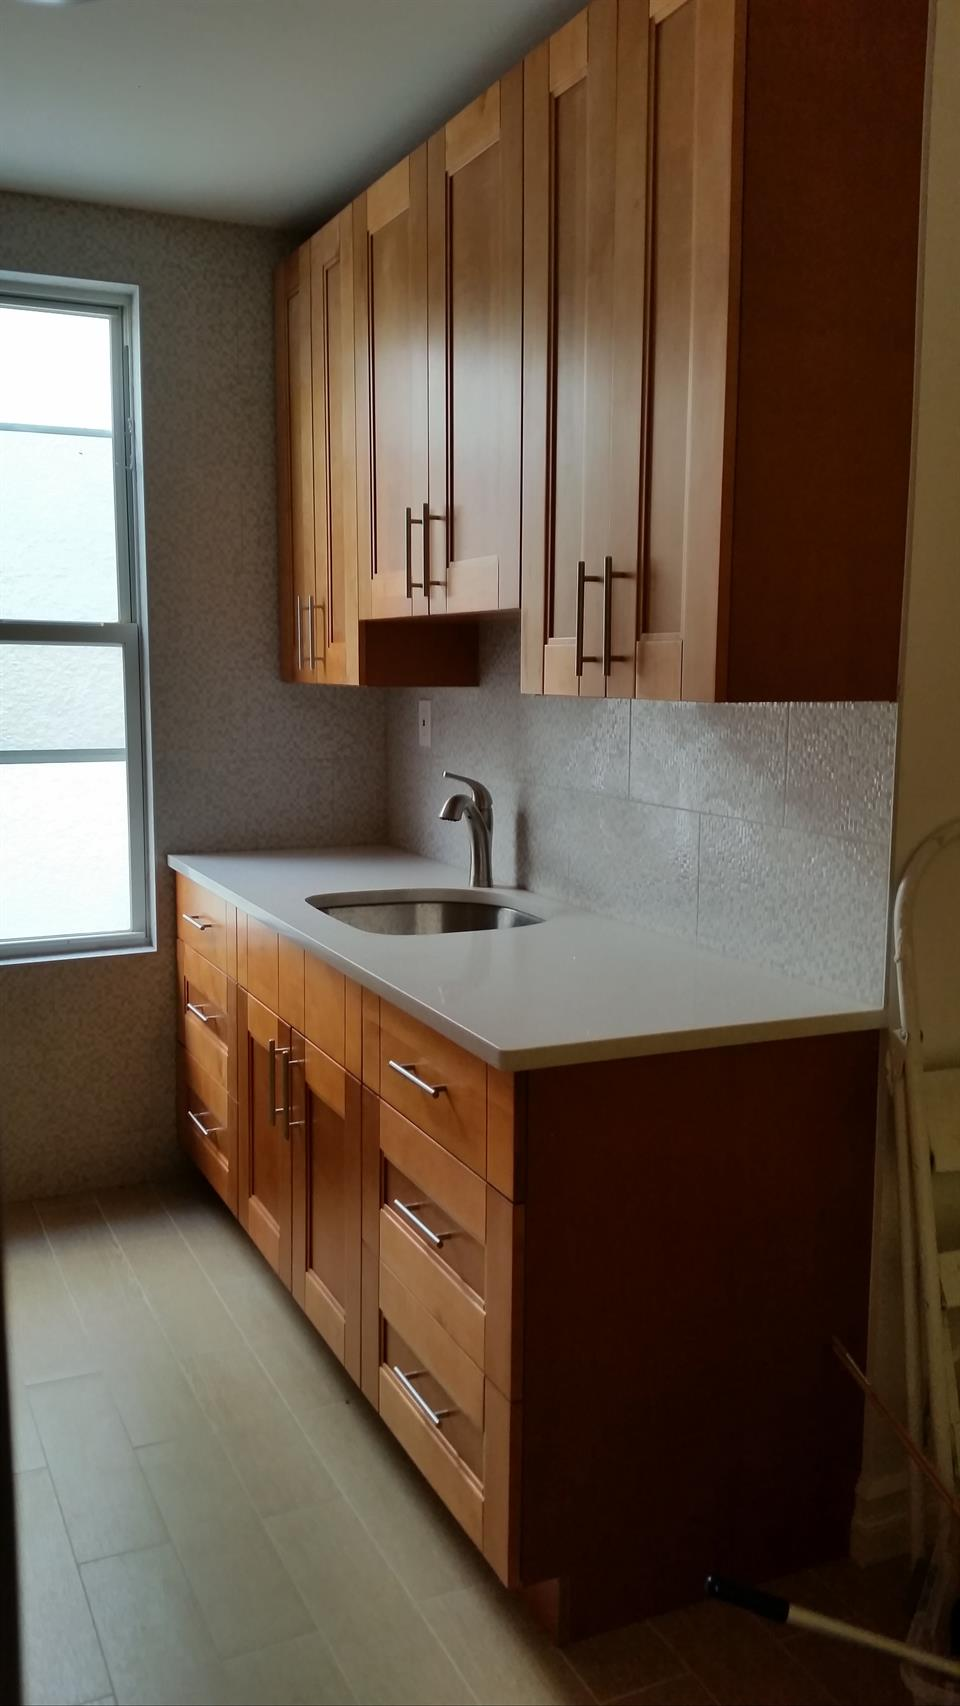 Additional photo for property listing at 261 94th St  Brooklyn, New York 11209 United States